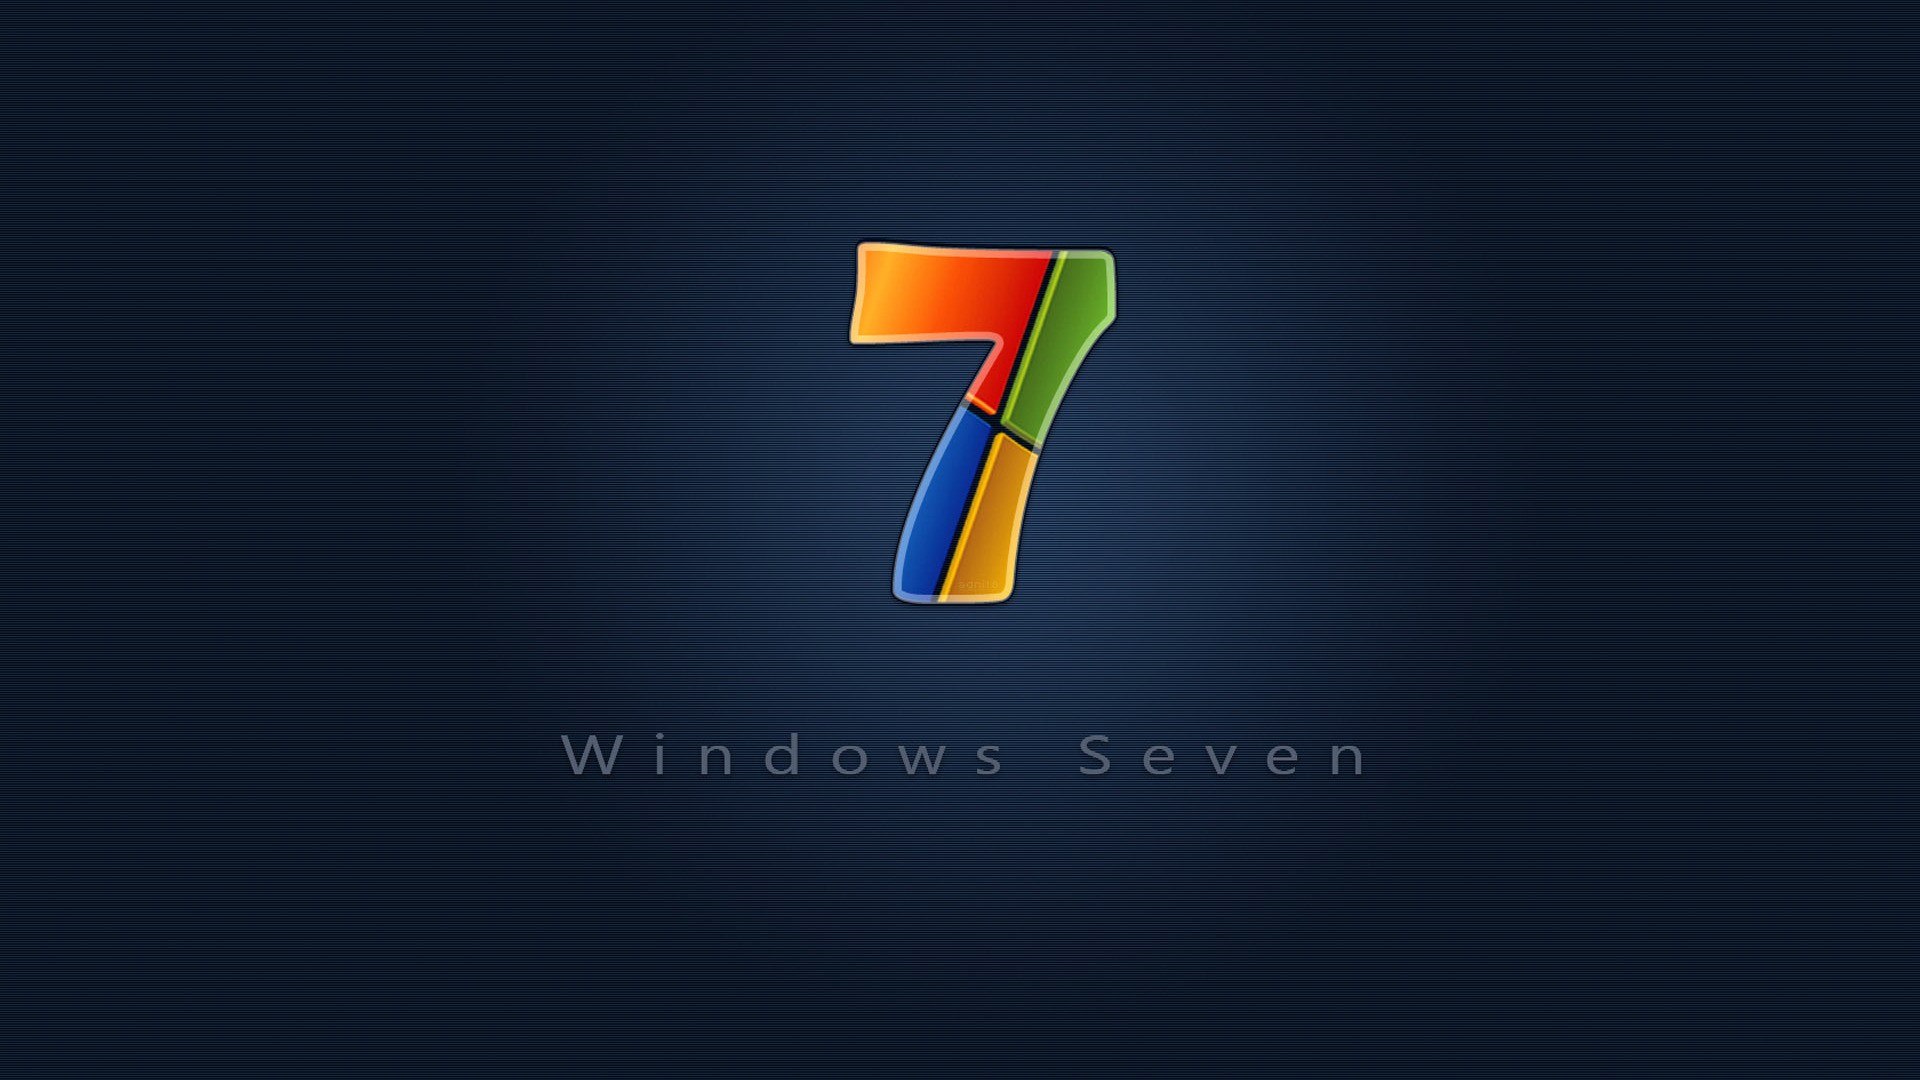 Обои для рабочего стола Windows 7: www.softrew.ru/best-wallpapers/853-oboi-rabochego-stola-windows-7.html